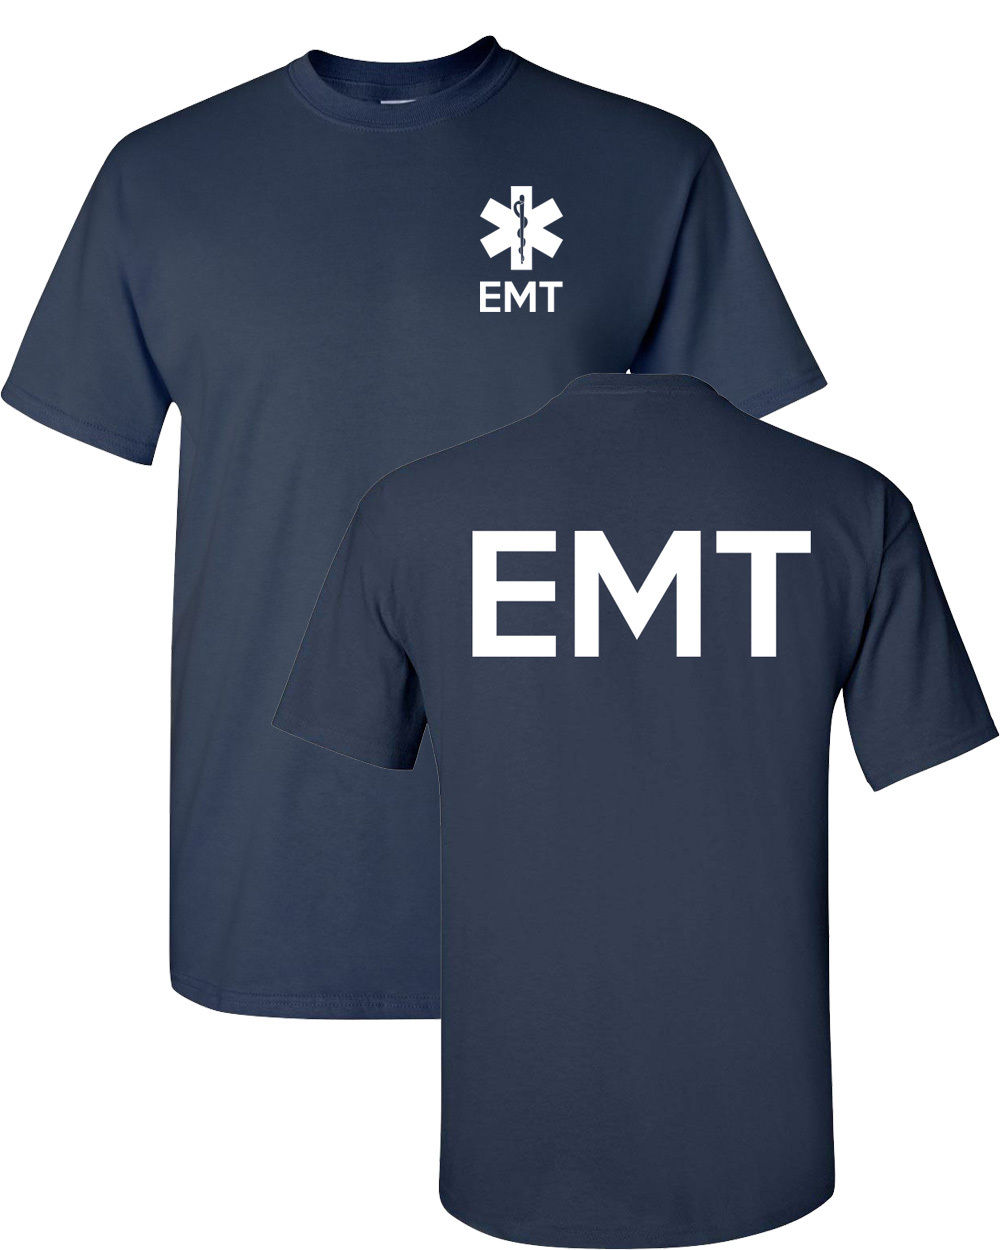 Fashion s T Shirt Cotton Short Sleeve Emt Paramedic Emergency Medical Services Front & Back Mes High Quality Tees(China)